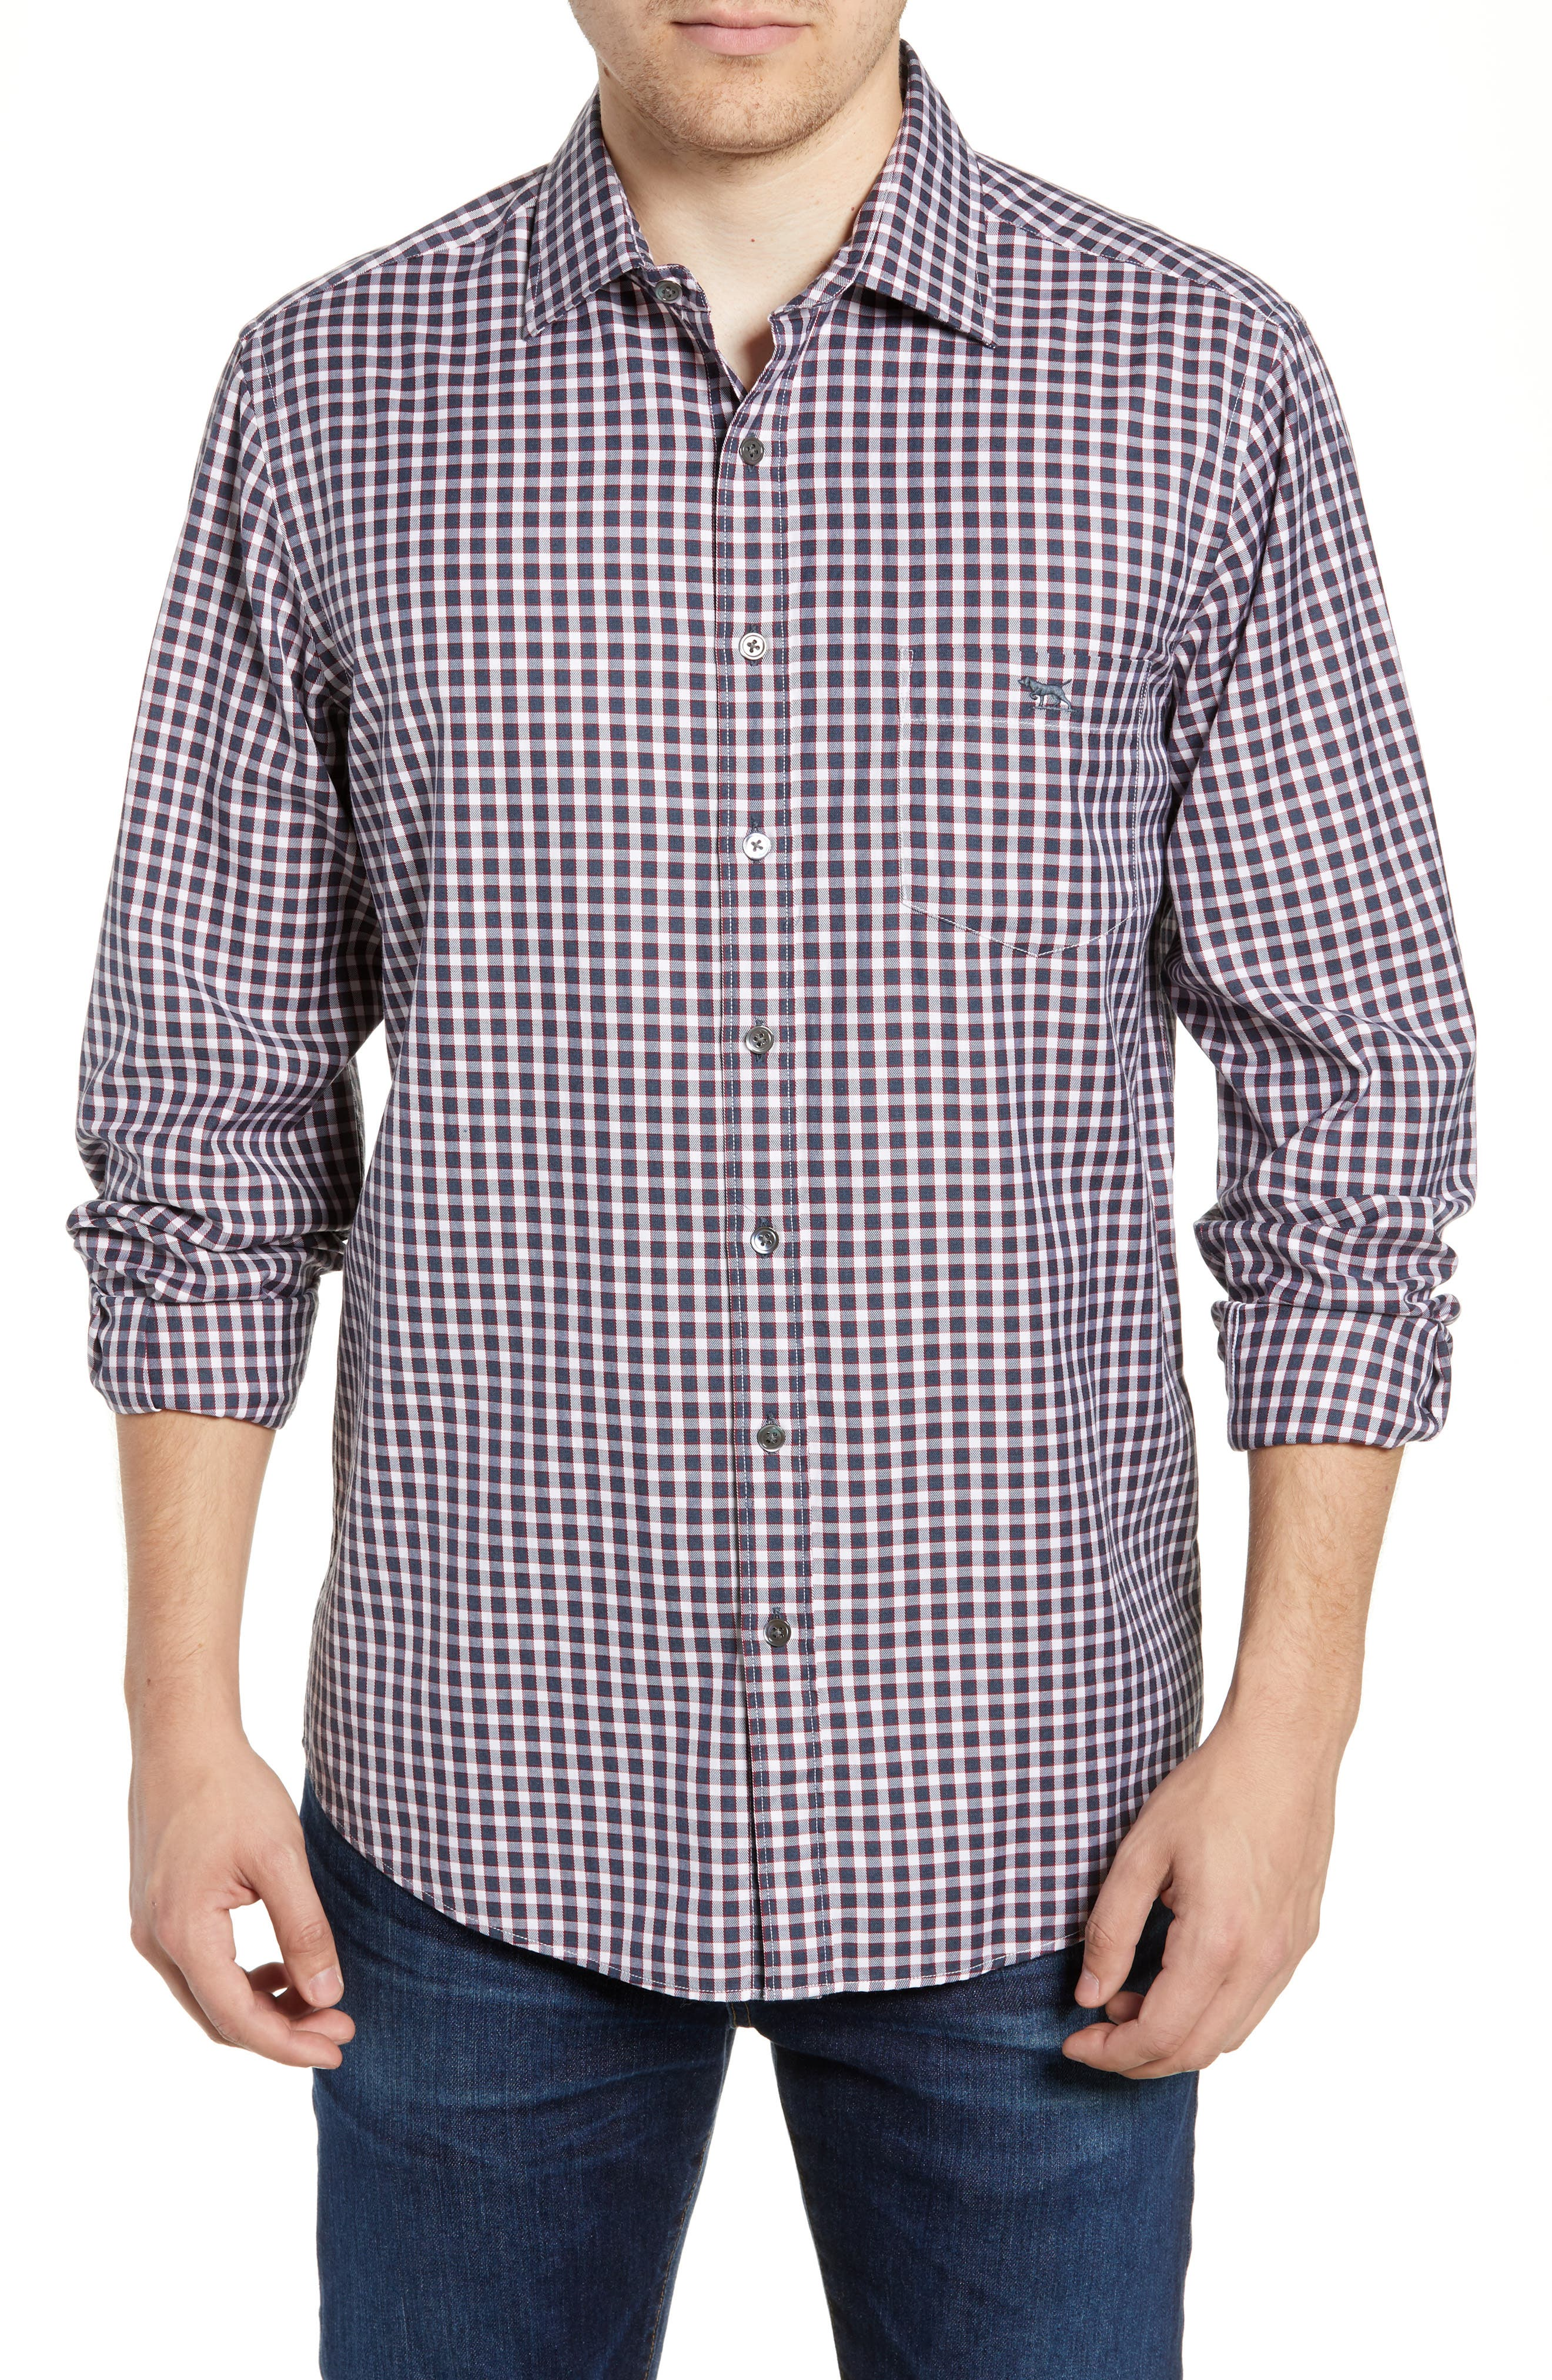 Botany Downs Regular Fit Sport Shirt,                         Main,                         color, CHARCOAL